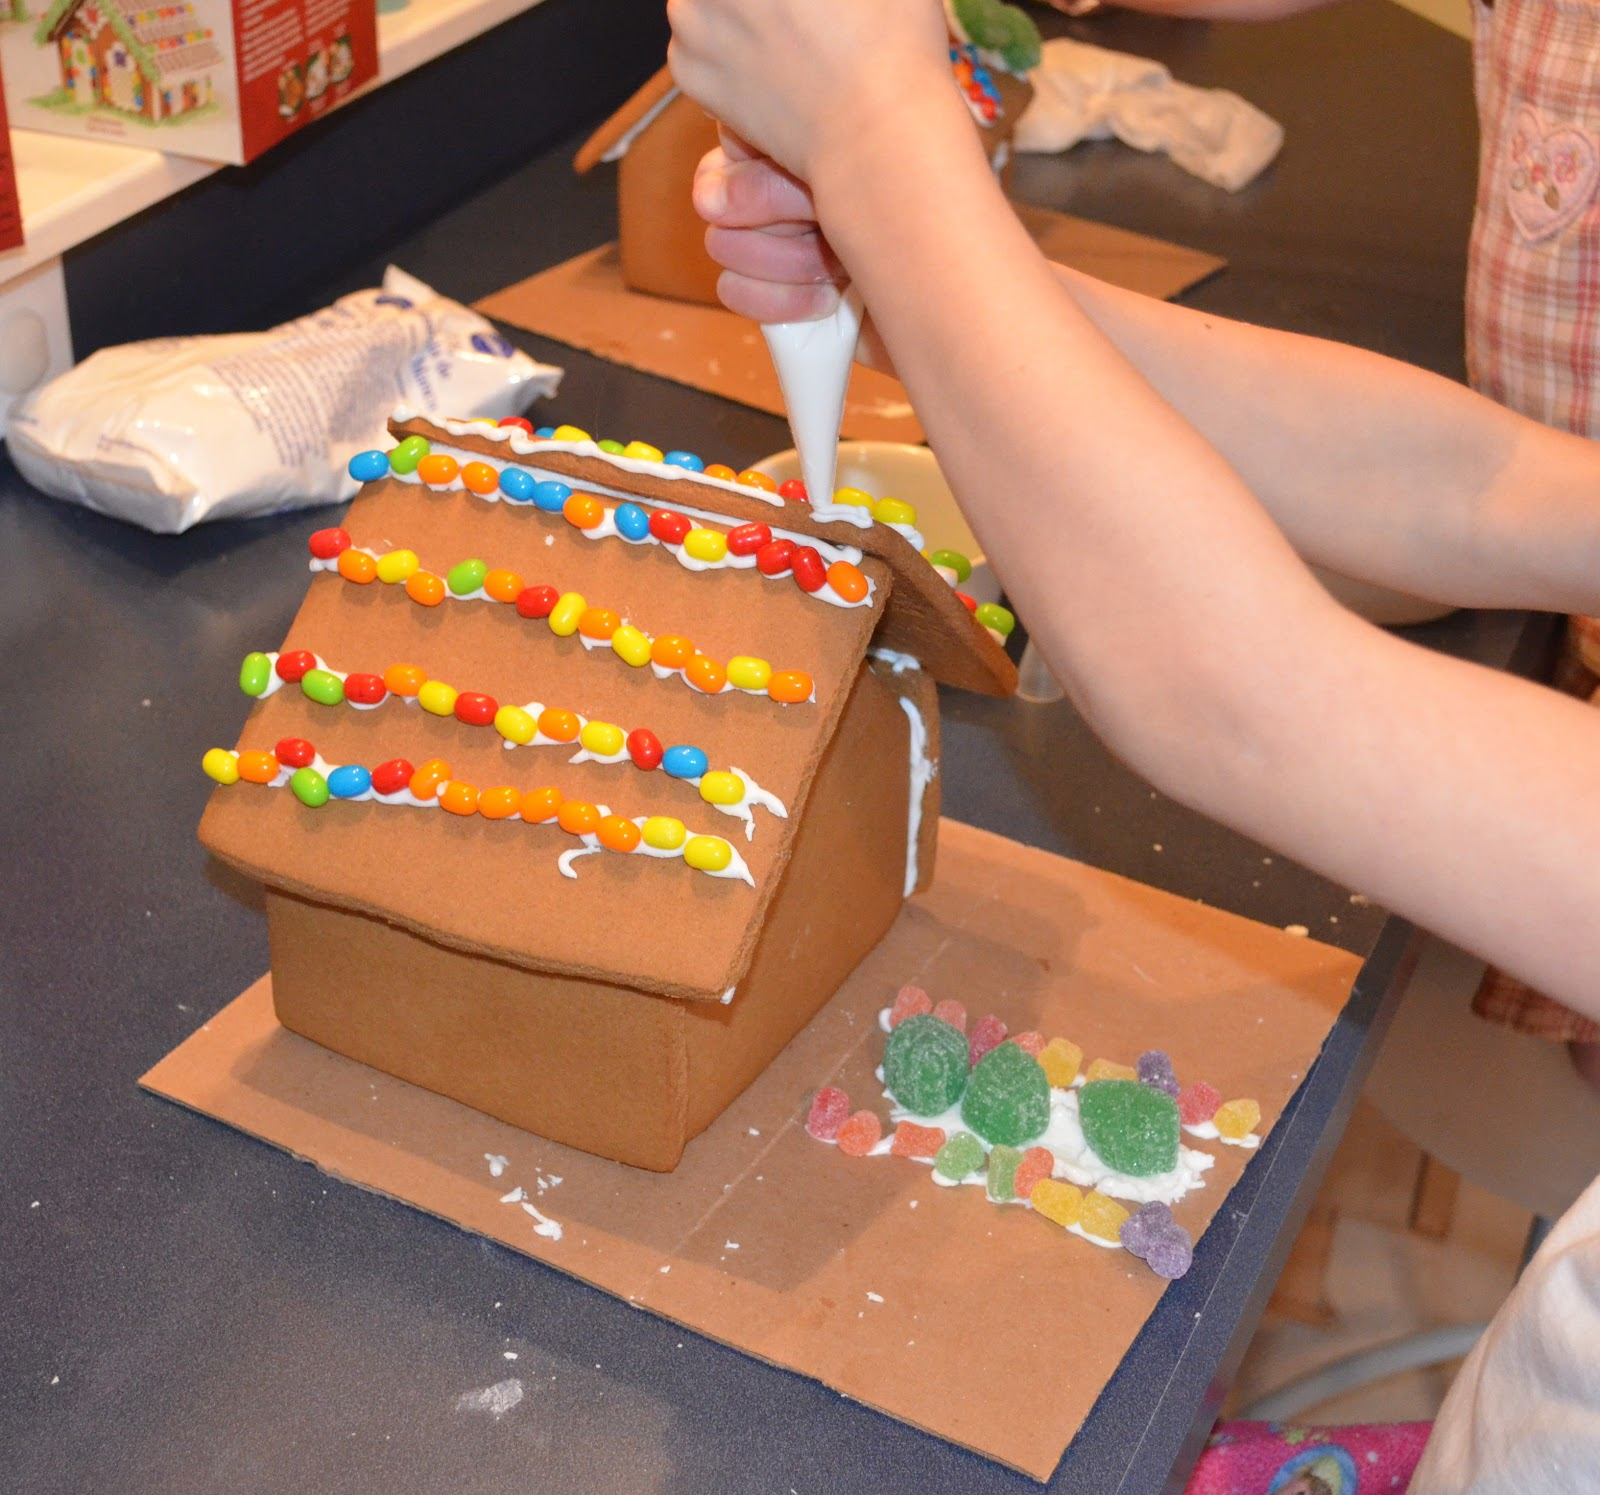 Build Decorate A Gingerbread House Day 4 Of The 12 Days